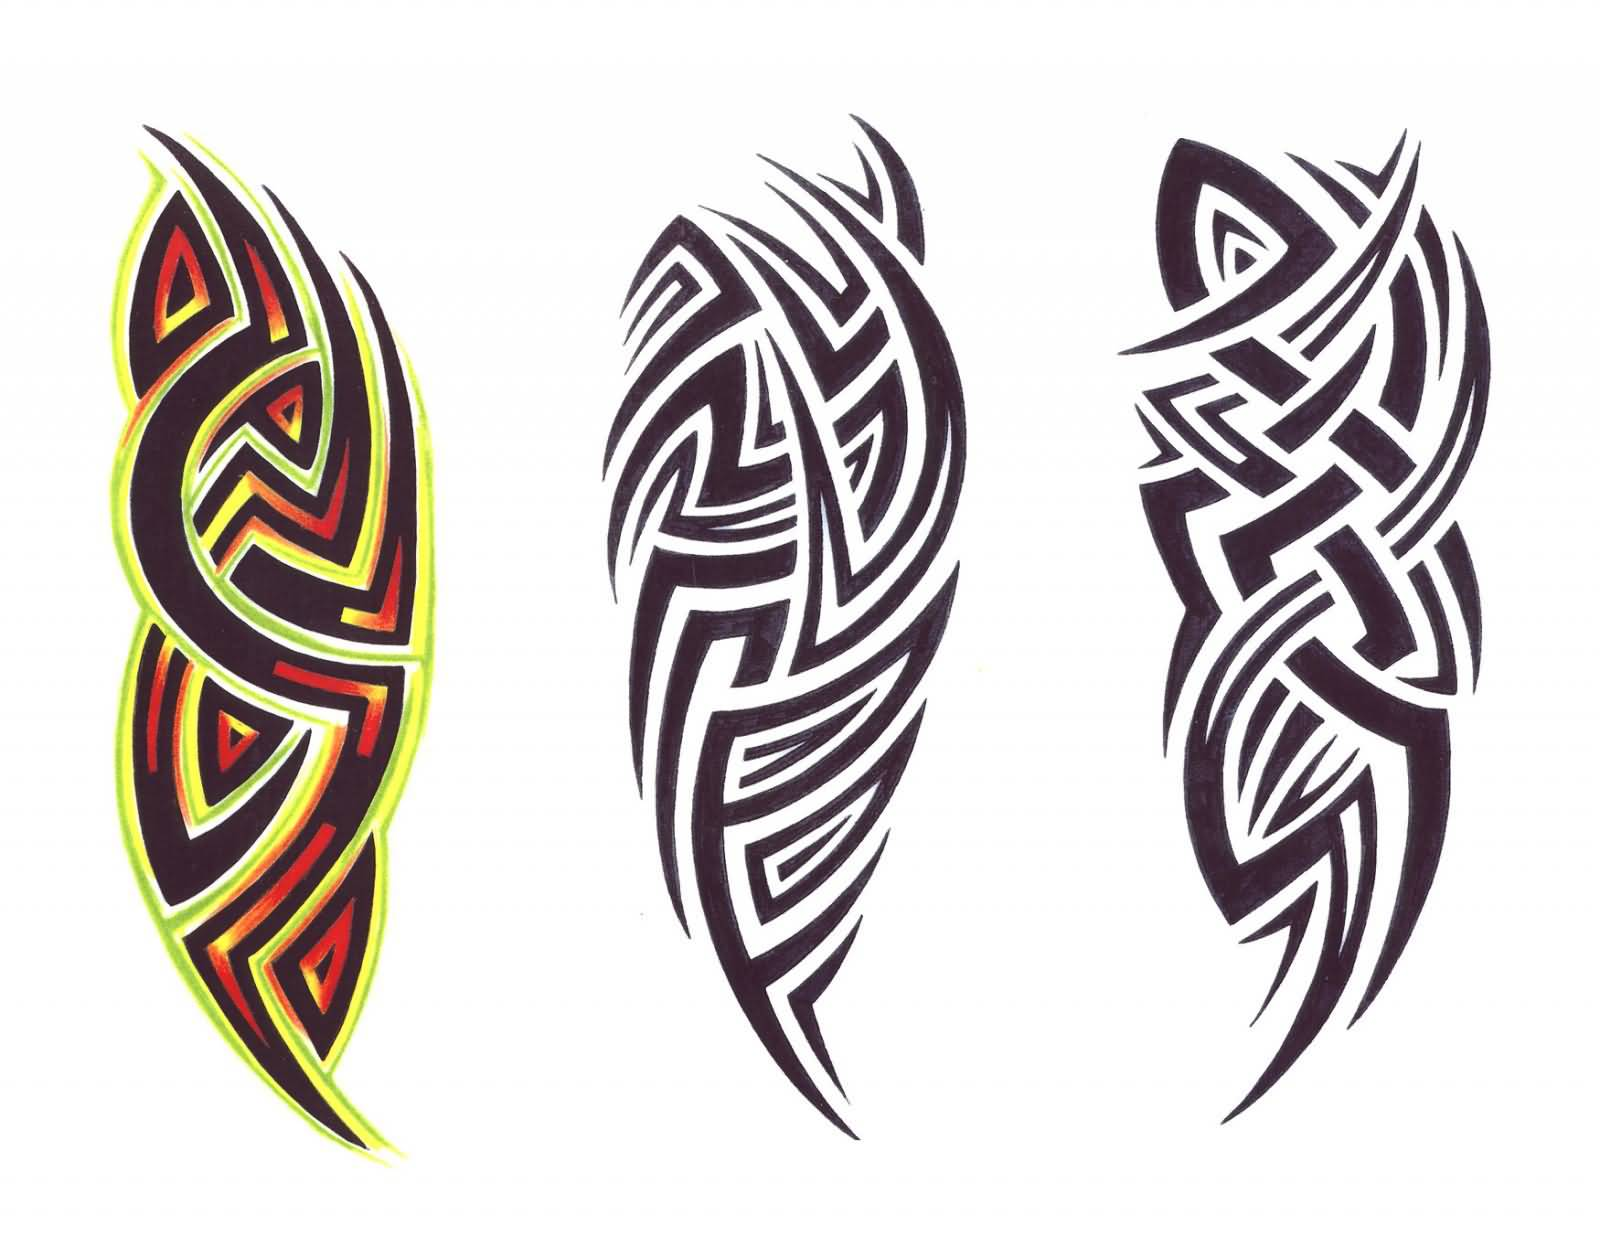 Free tribal clipart designs picture free Pictures Of Tribal Designs Group with 57+ items picture free